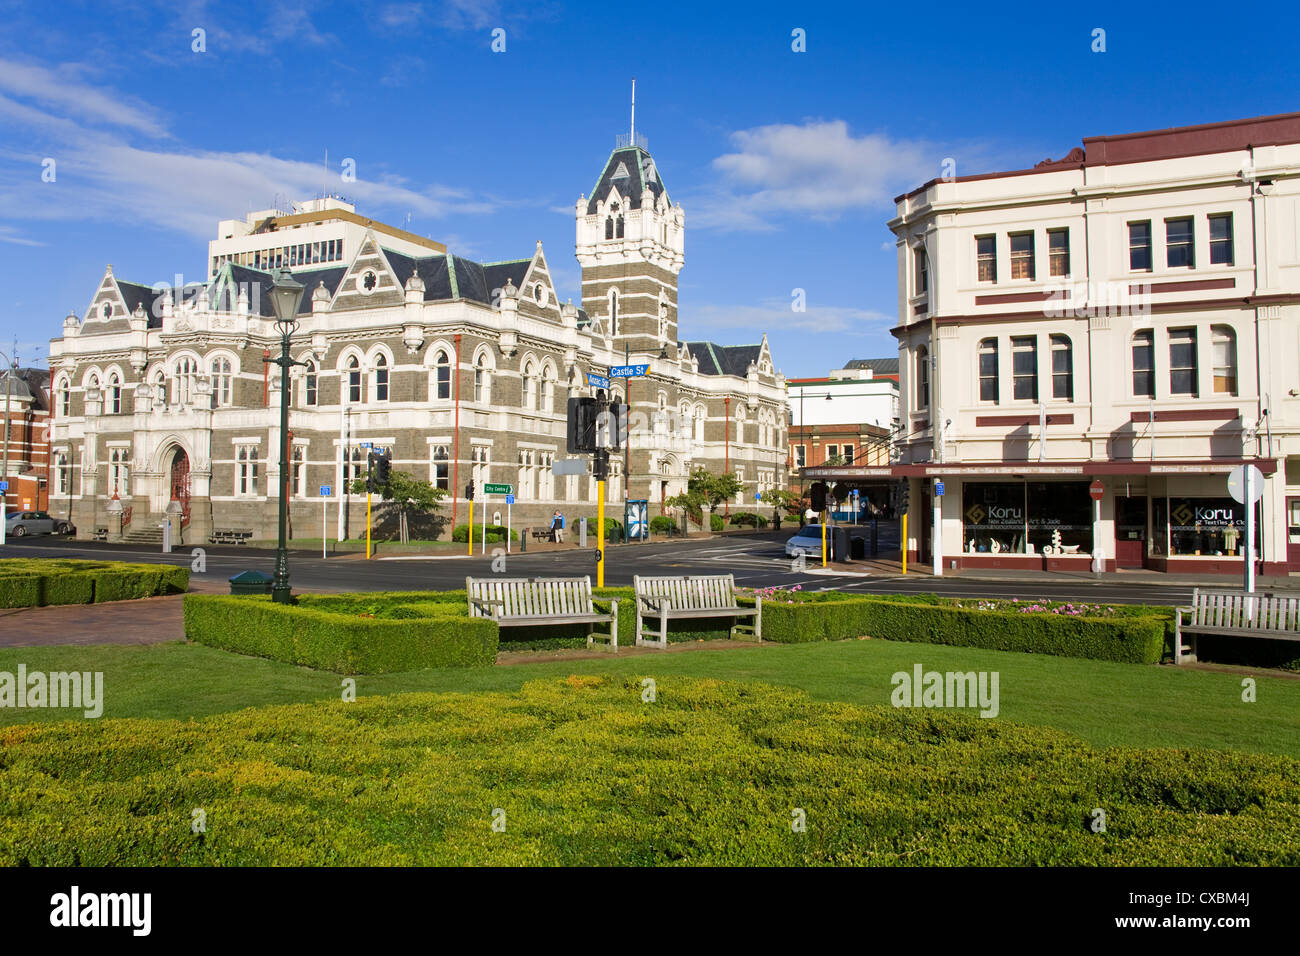 Law Courts Building on Stuart Street, Dunedin, Central Business District, Otago District, South Island, New Zealand, - Stock Image